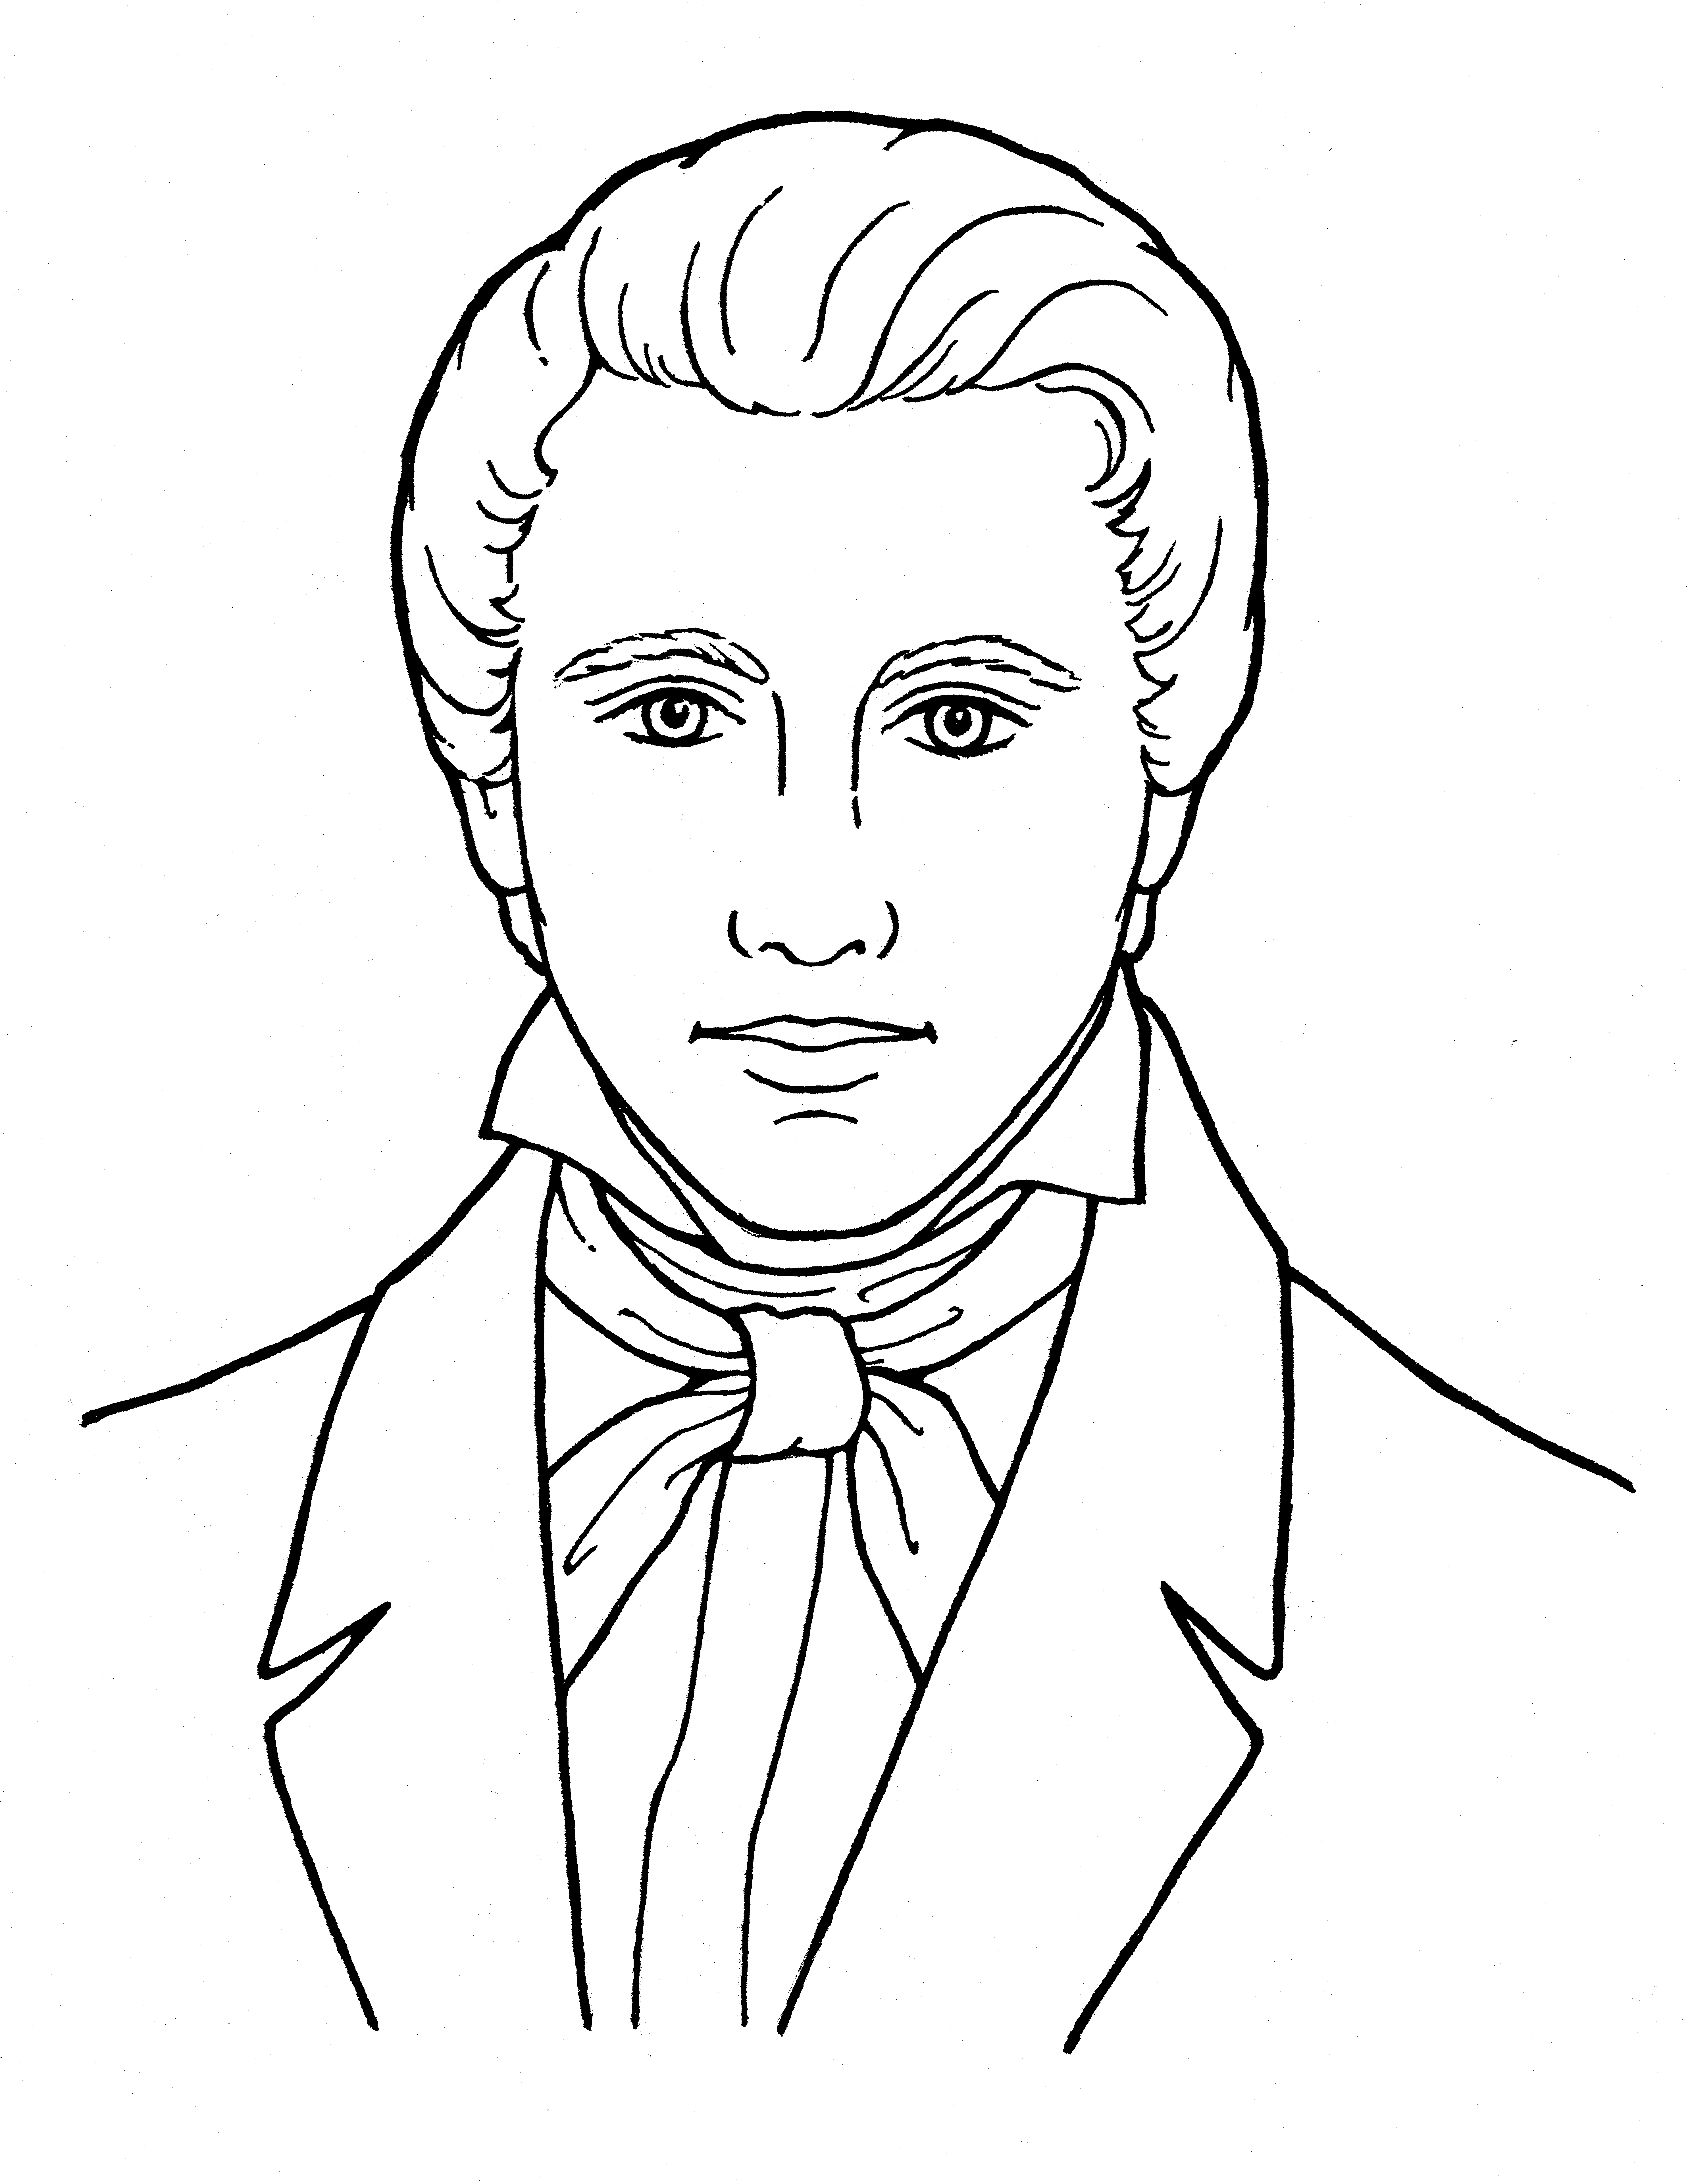 An illustration of Joseph Smith the Prophet, from the nursery manual Behold Your Little Ones (2008), page 107.